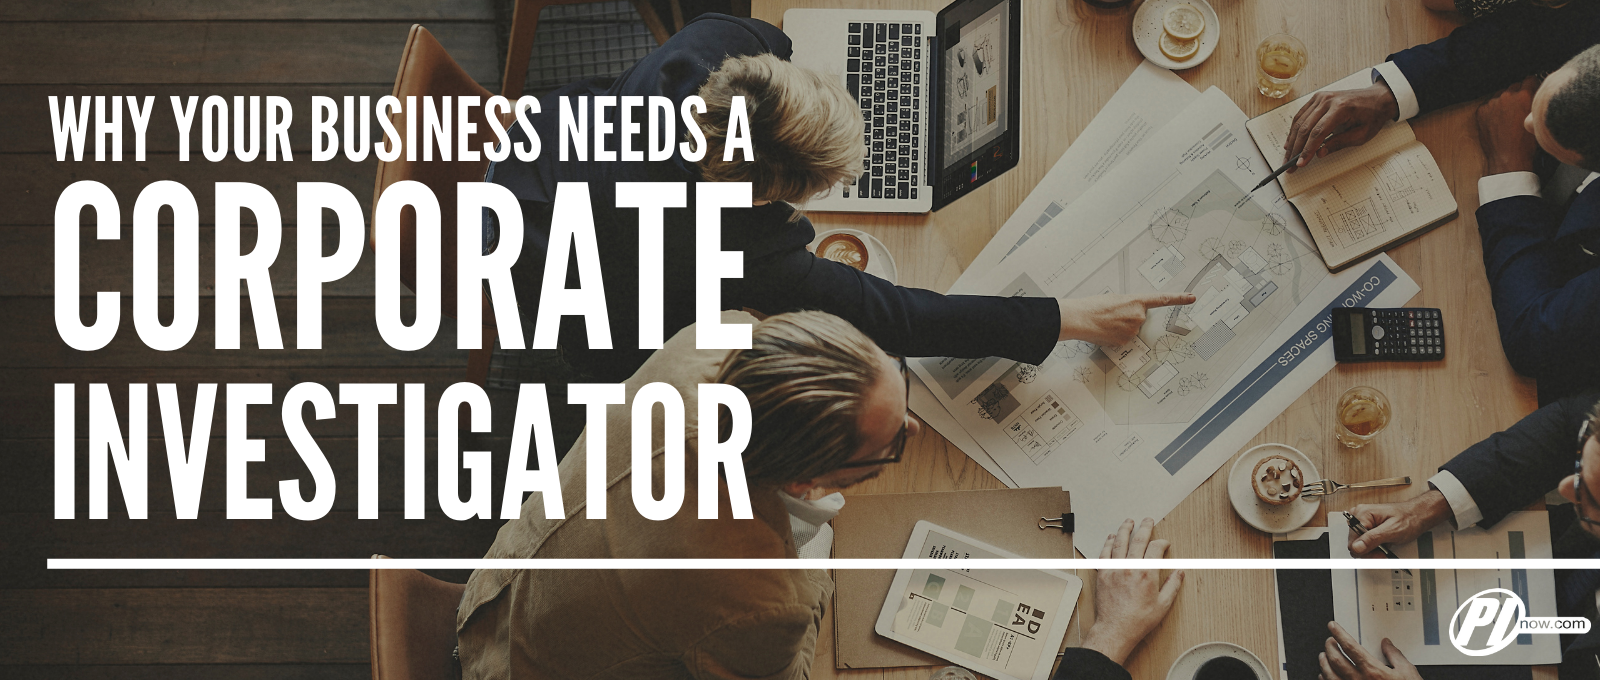 Why Your Business Needs a Corporate Investigator